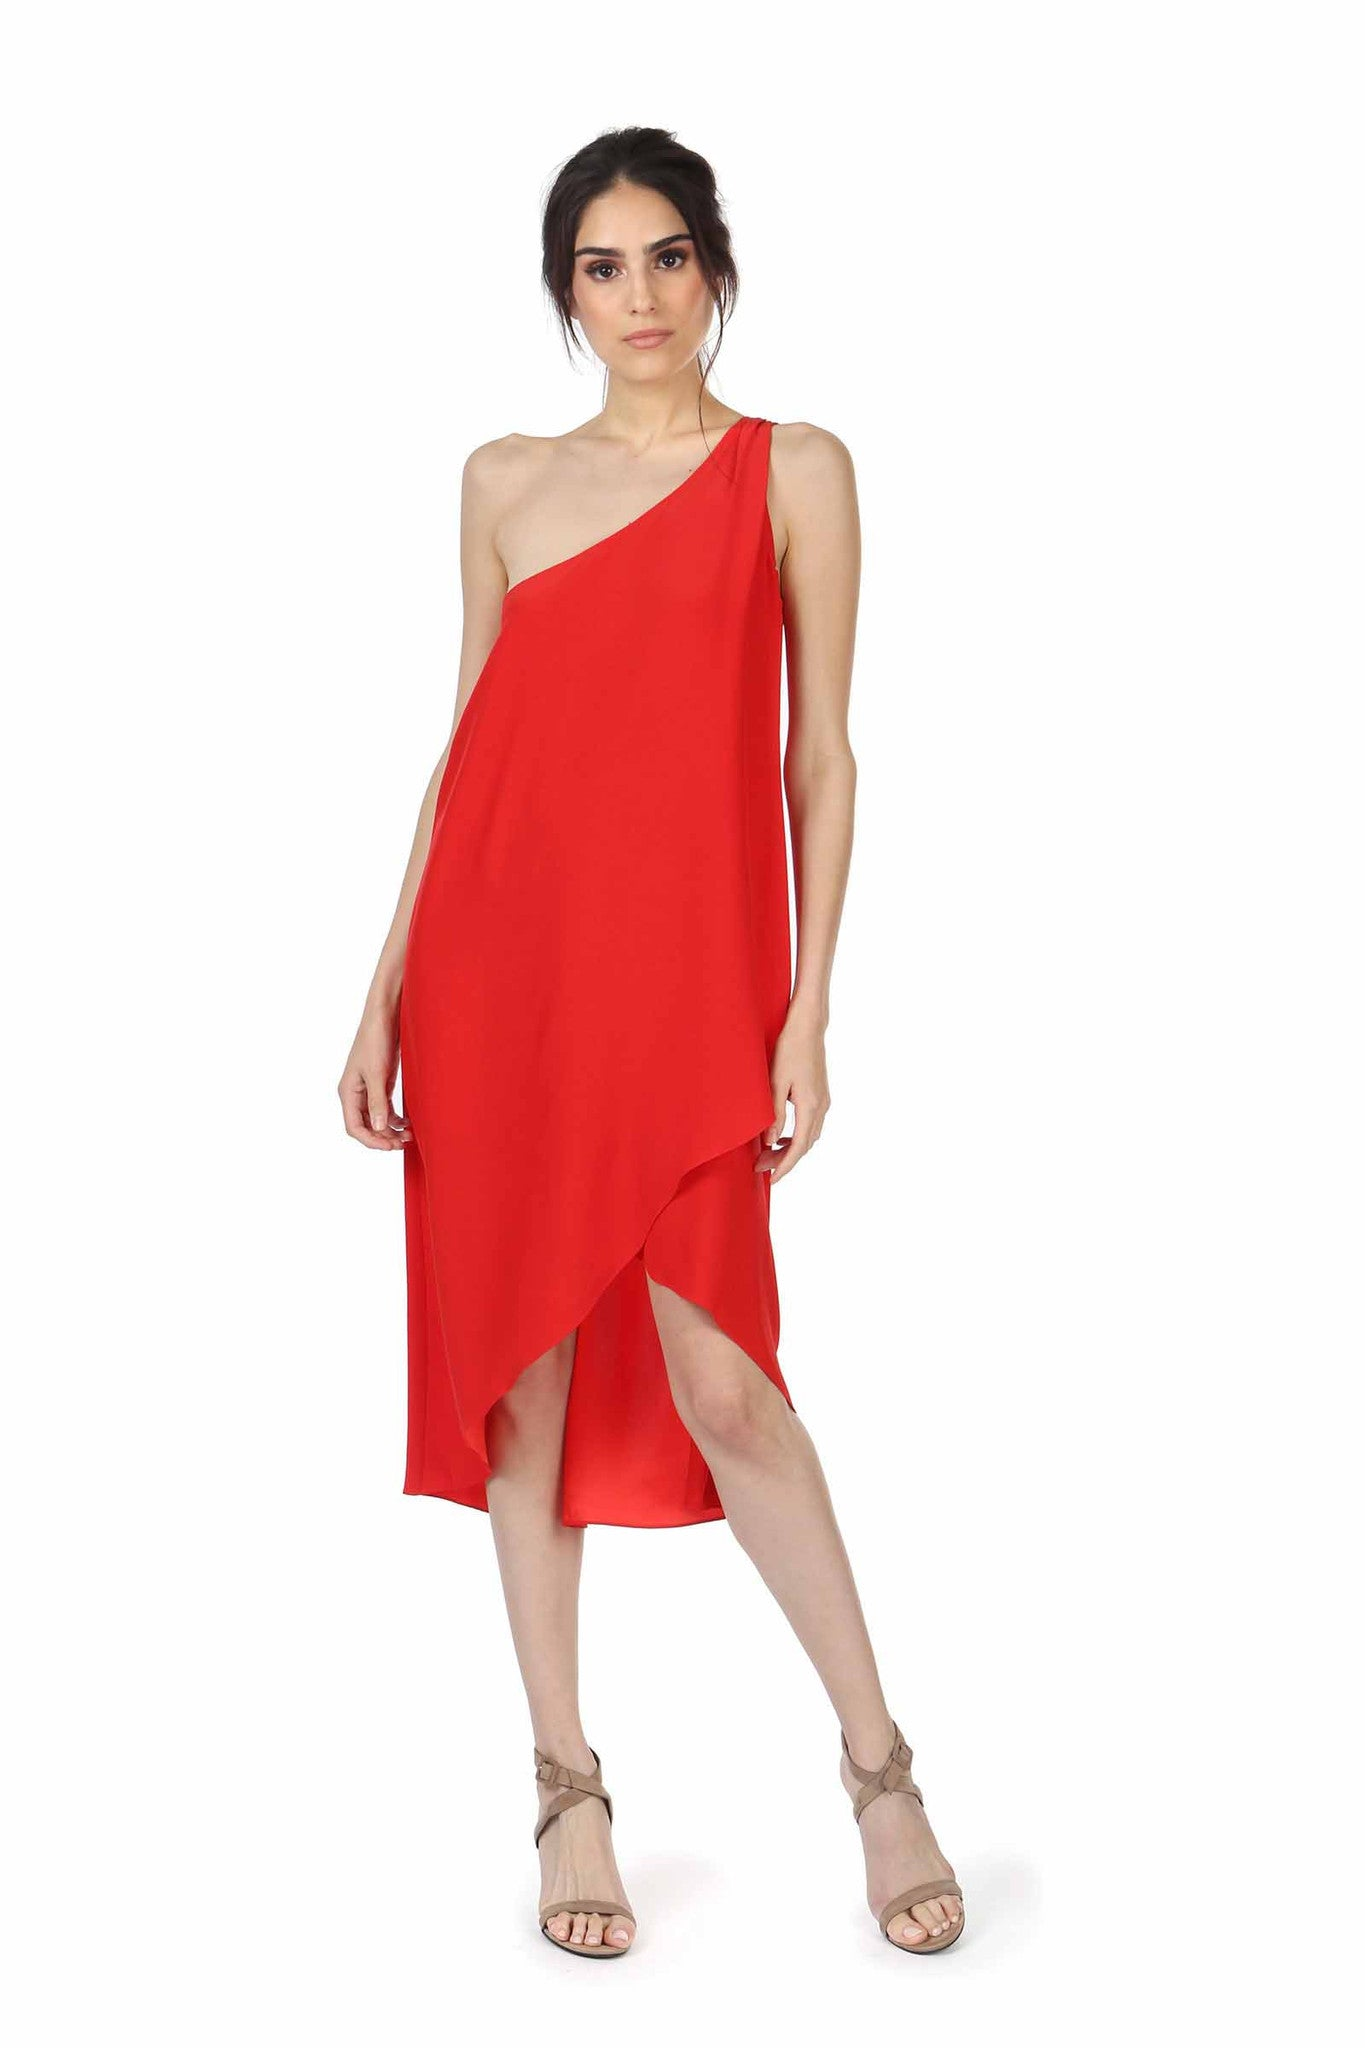 Jay Godfrey Red One-Shoulder Dress - Front View